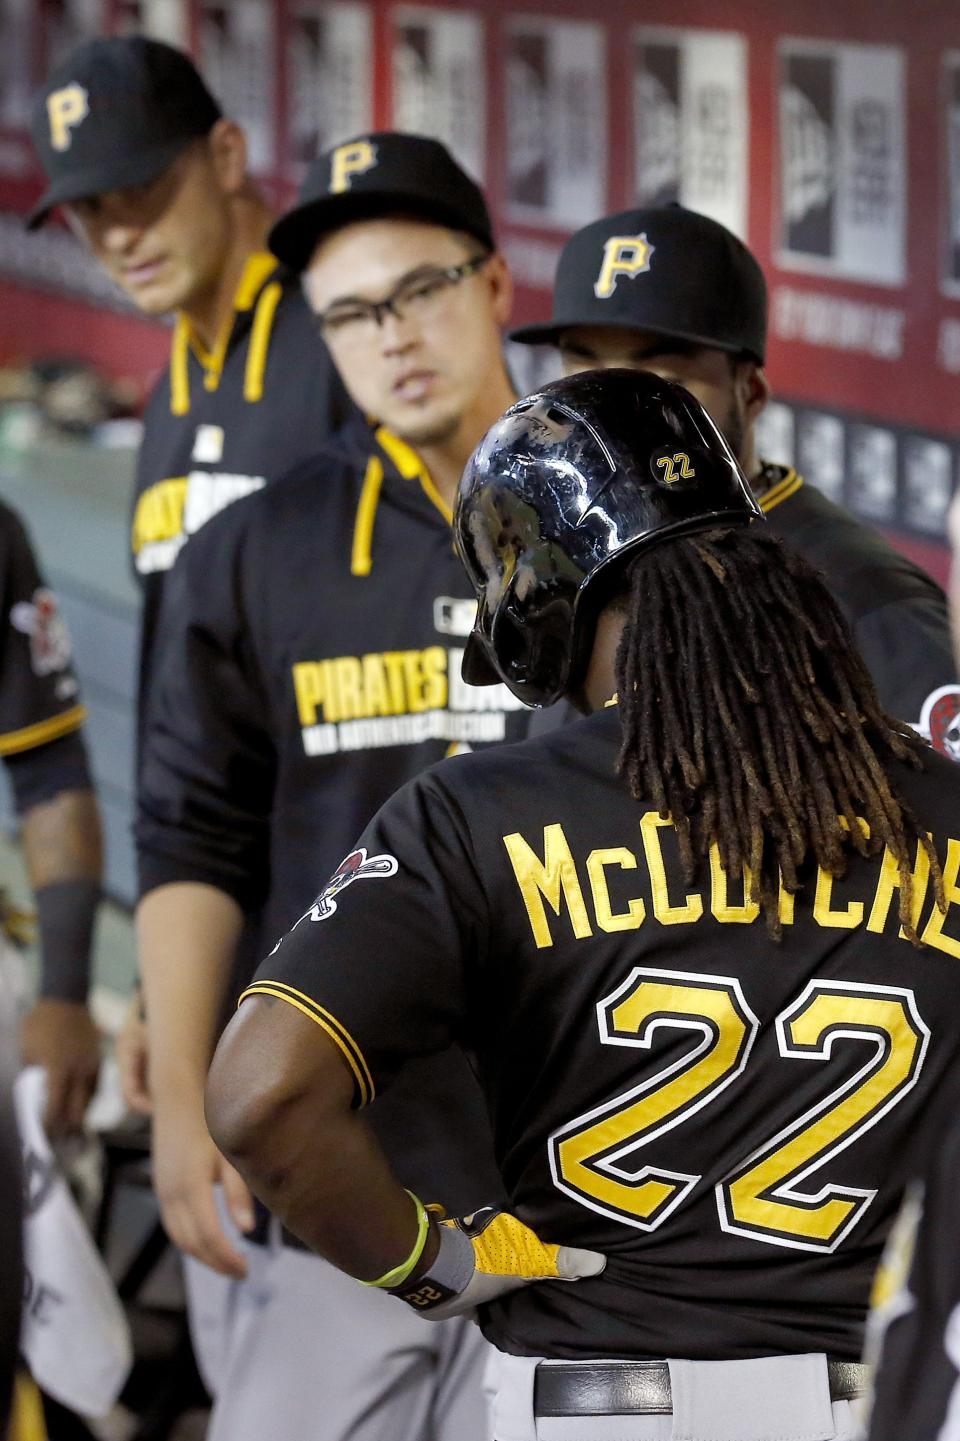 McCutchen has broken rib, hoping to avoid DL